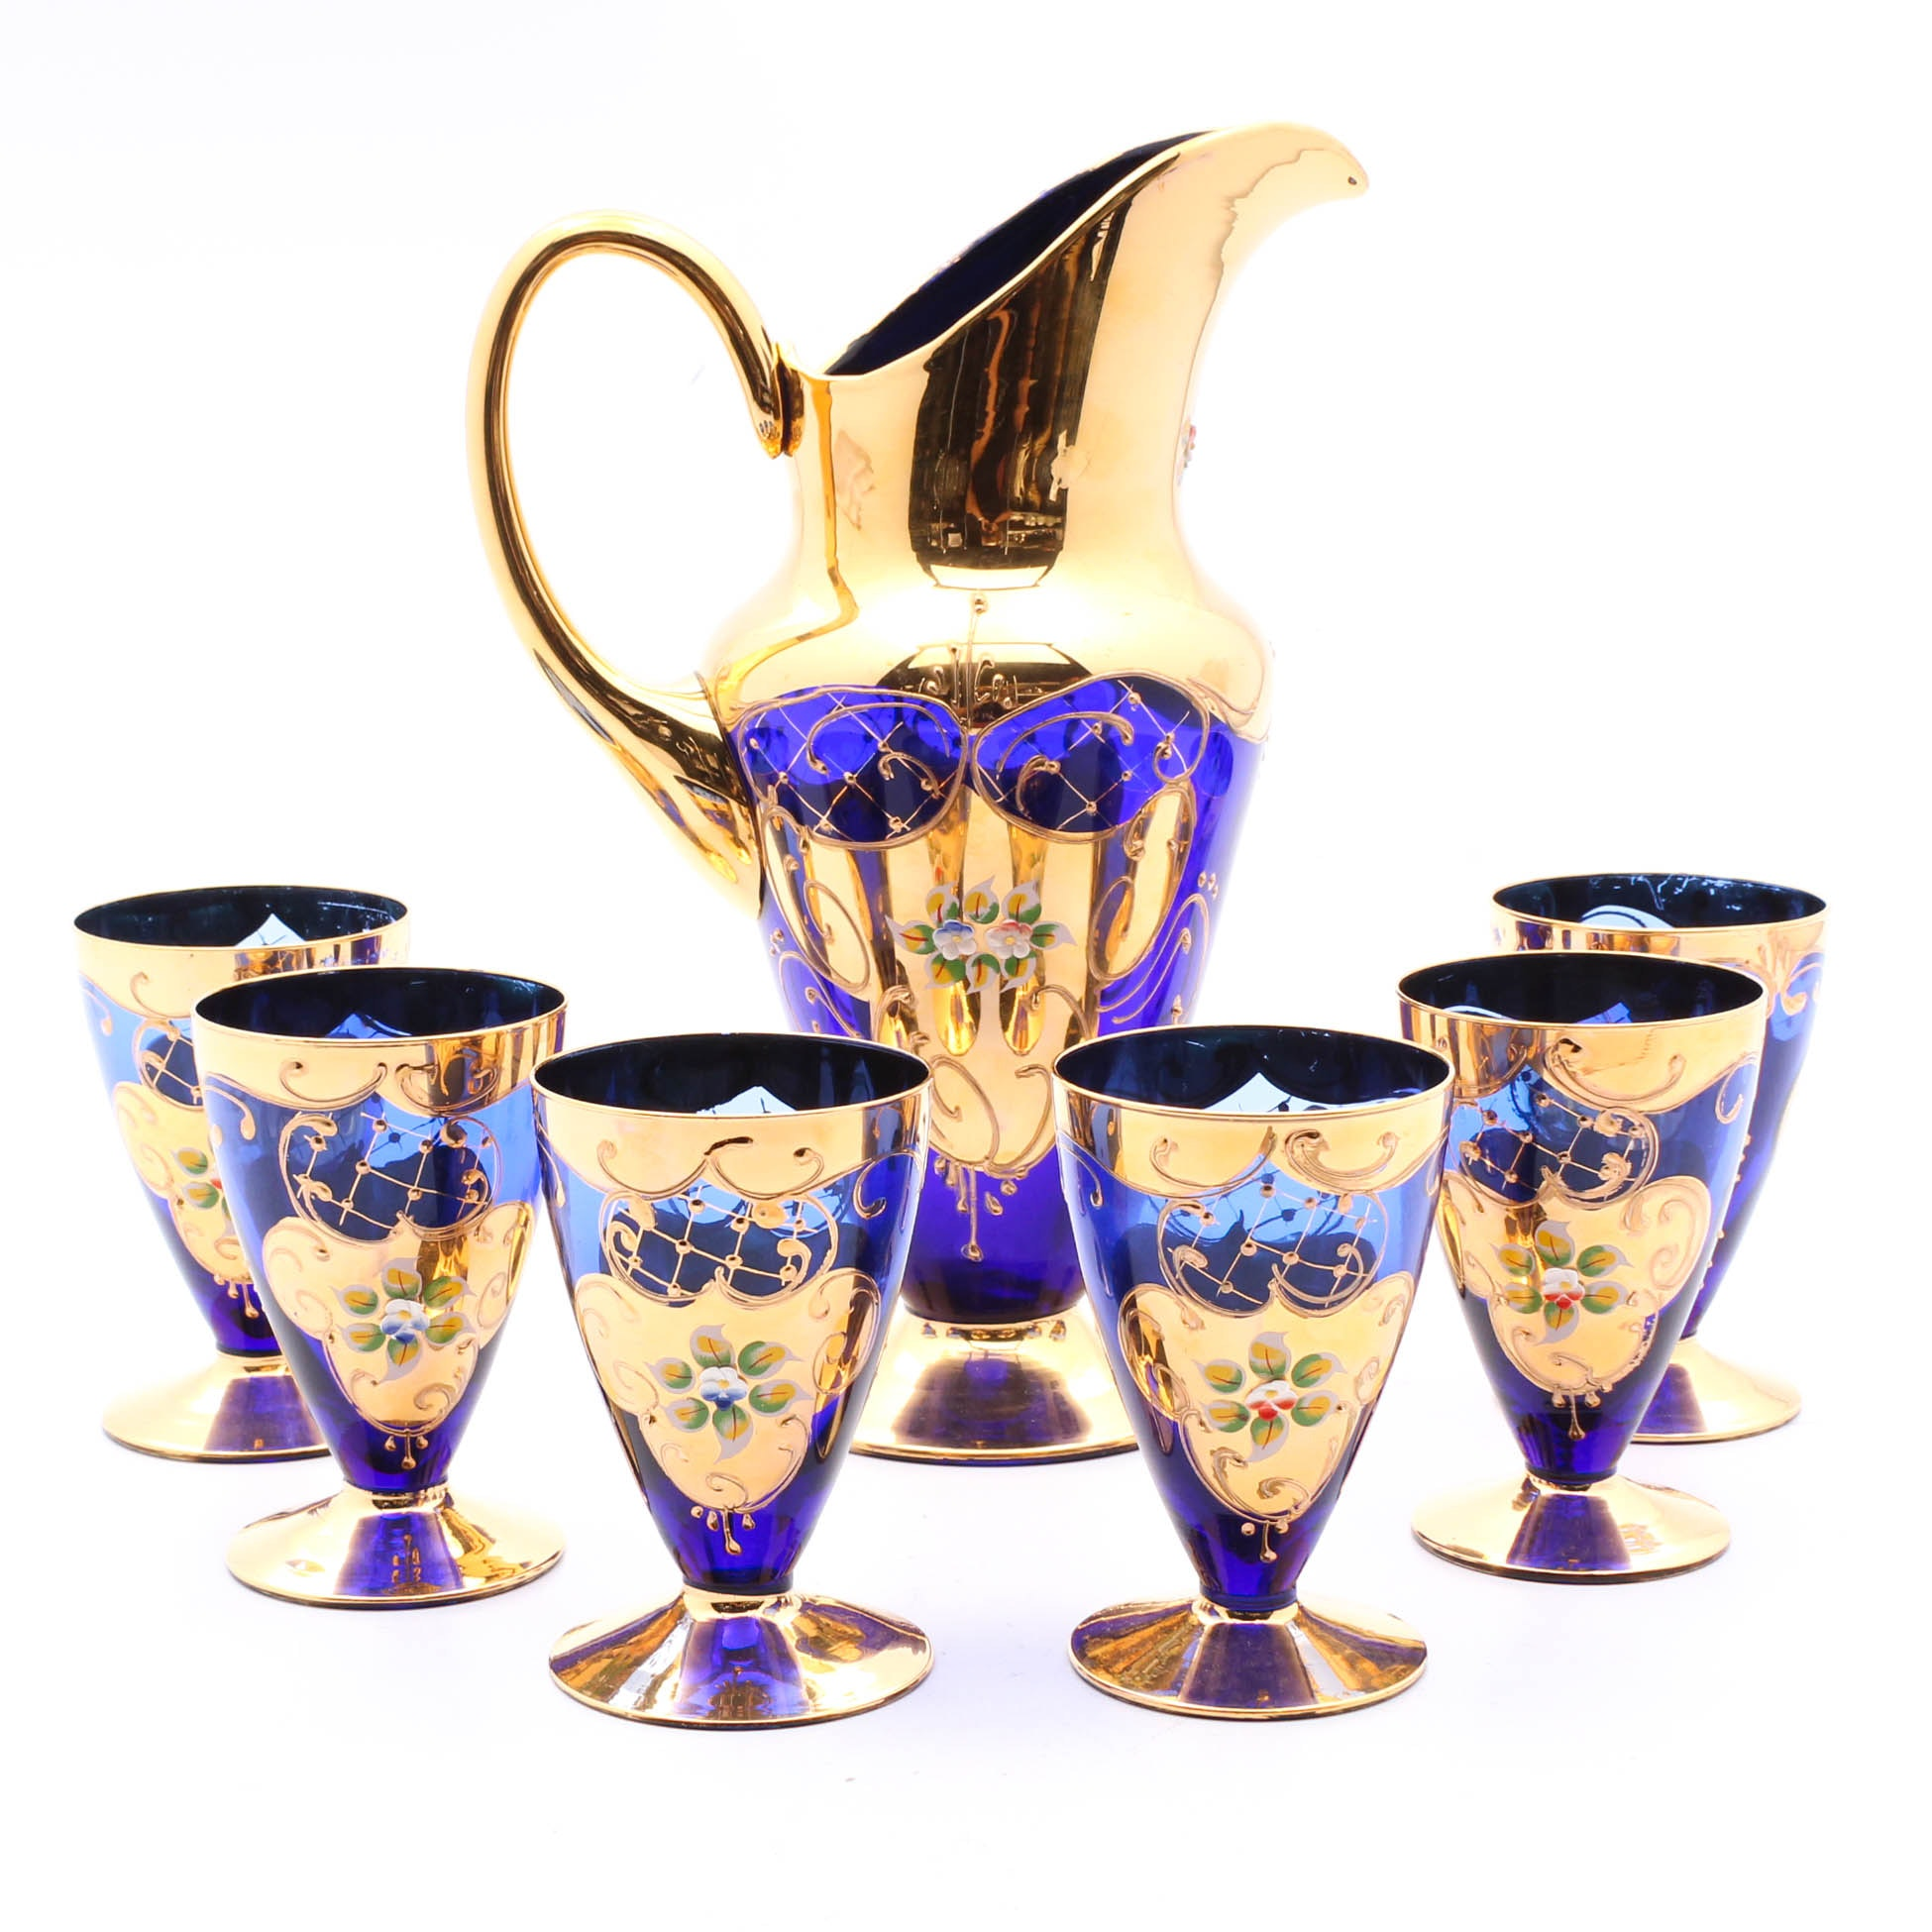 Bohemia Glass Cobalt Gilt and Enameled Pitcher and Goblets